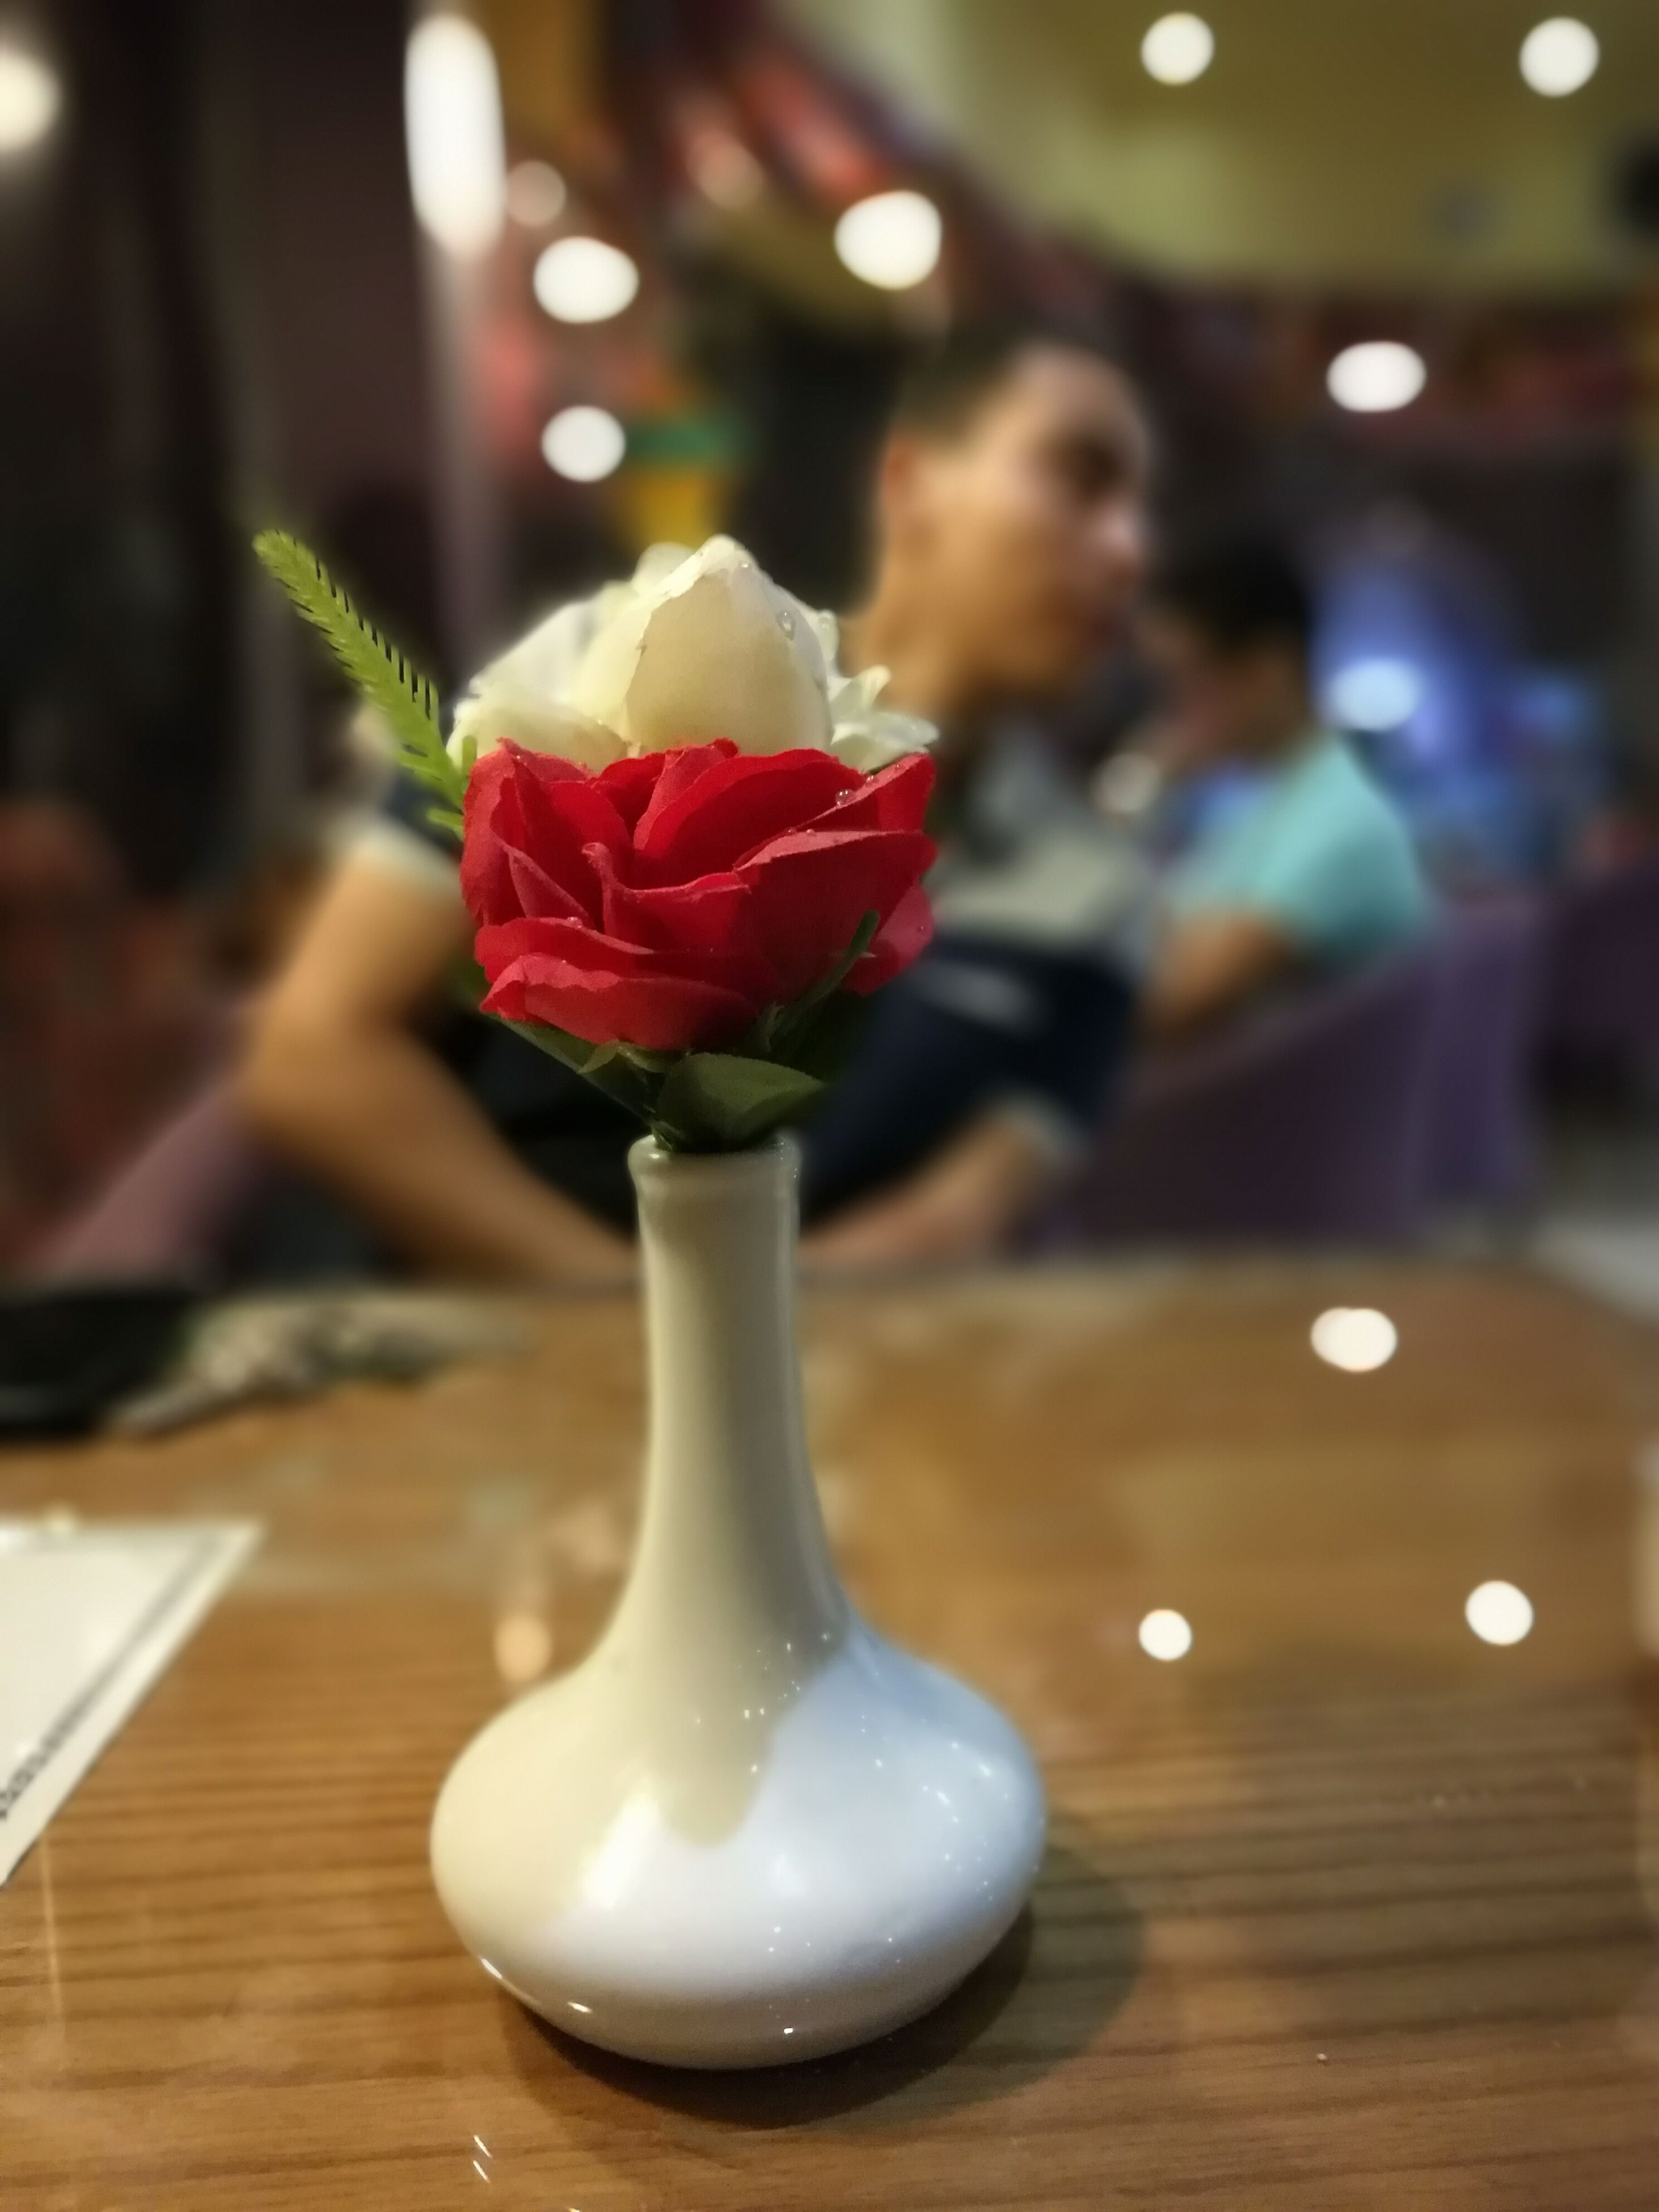 indoors, flower, table, focus on foreground, freshness, vase, red, close-up, still life, selective focus, fragility, decoration, pink color, petal, rose - flower, home interior, no people, flower head, wood - material, white color